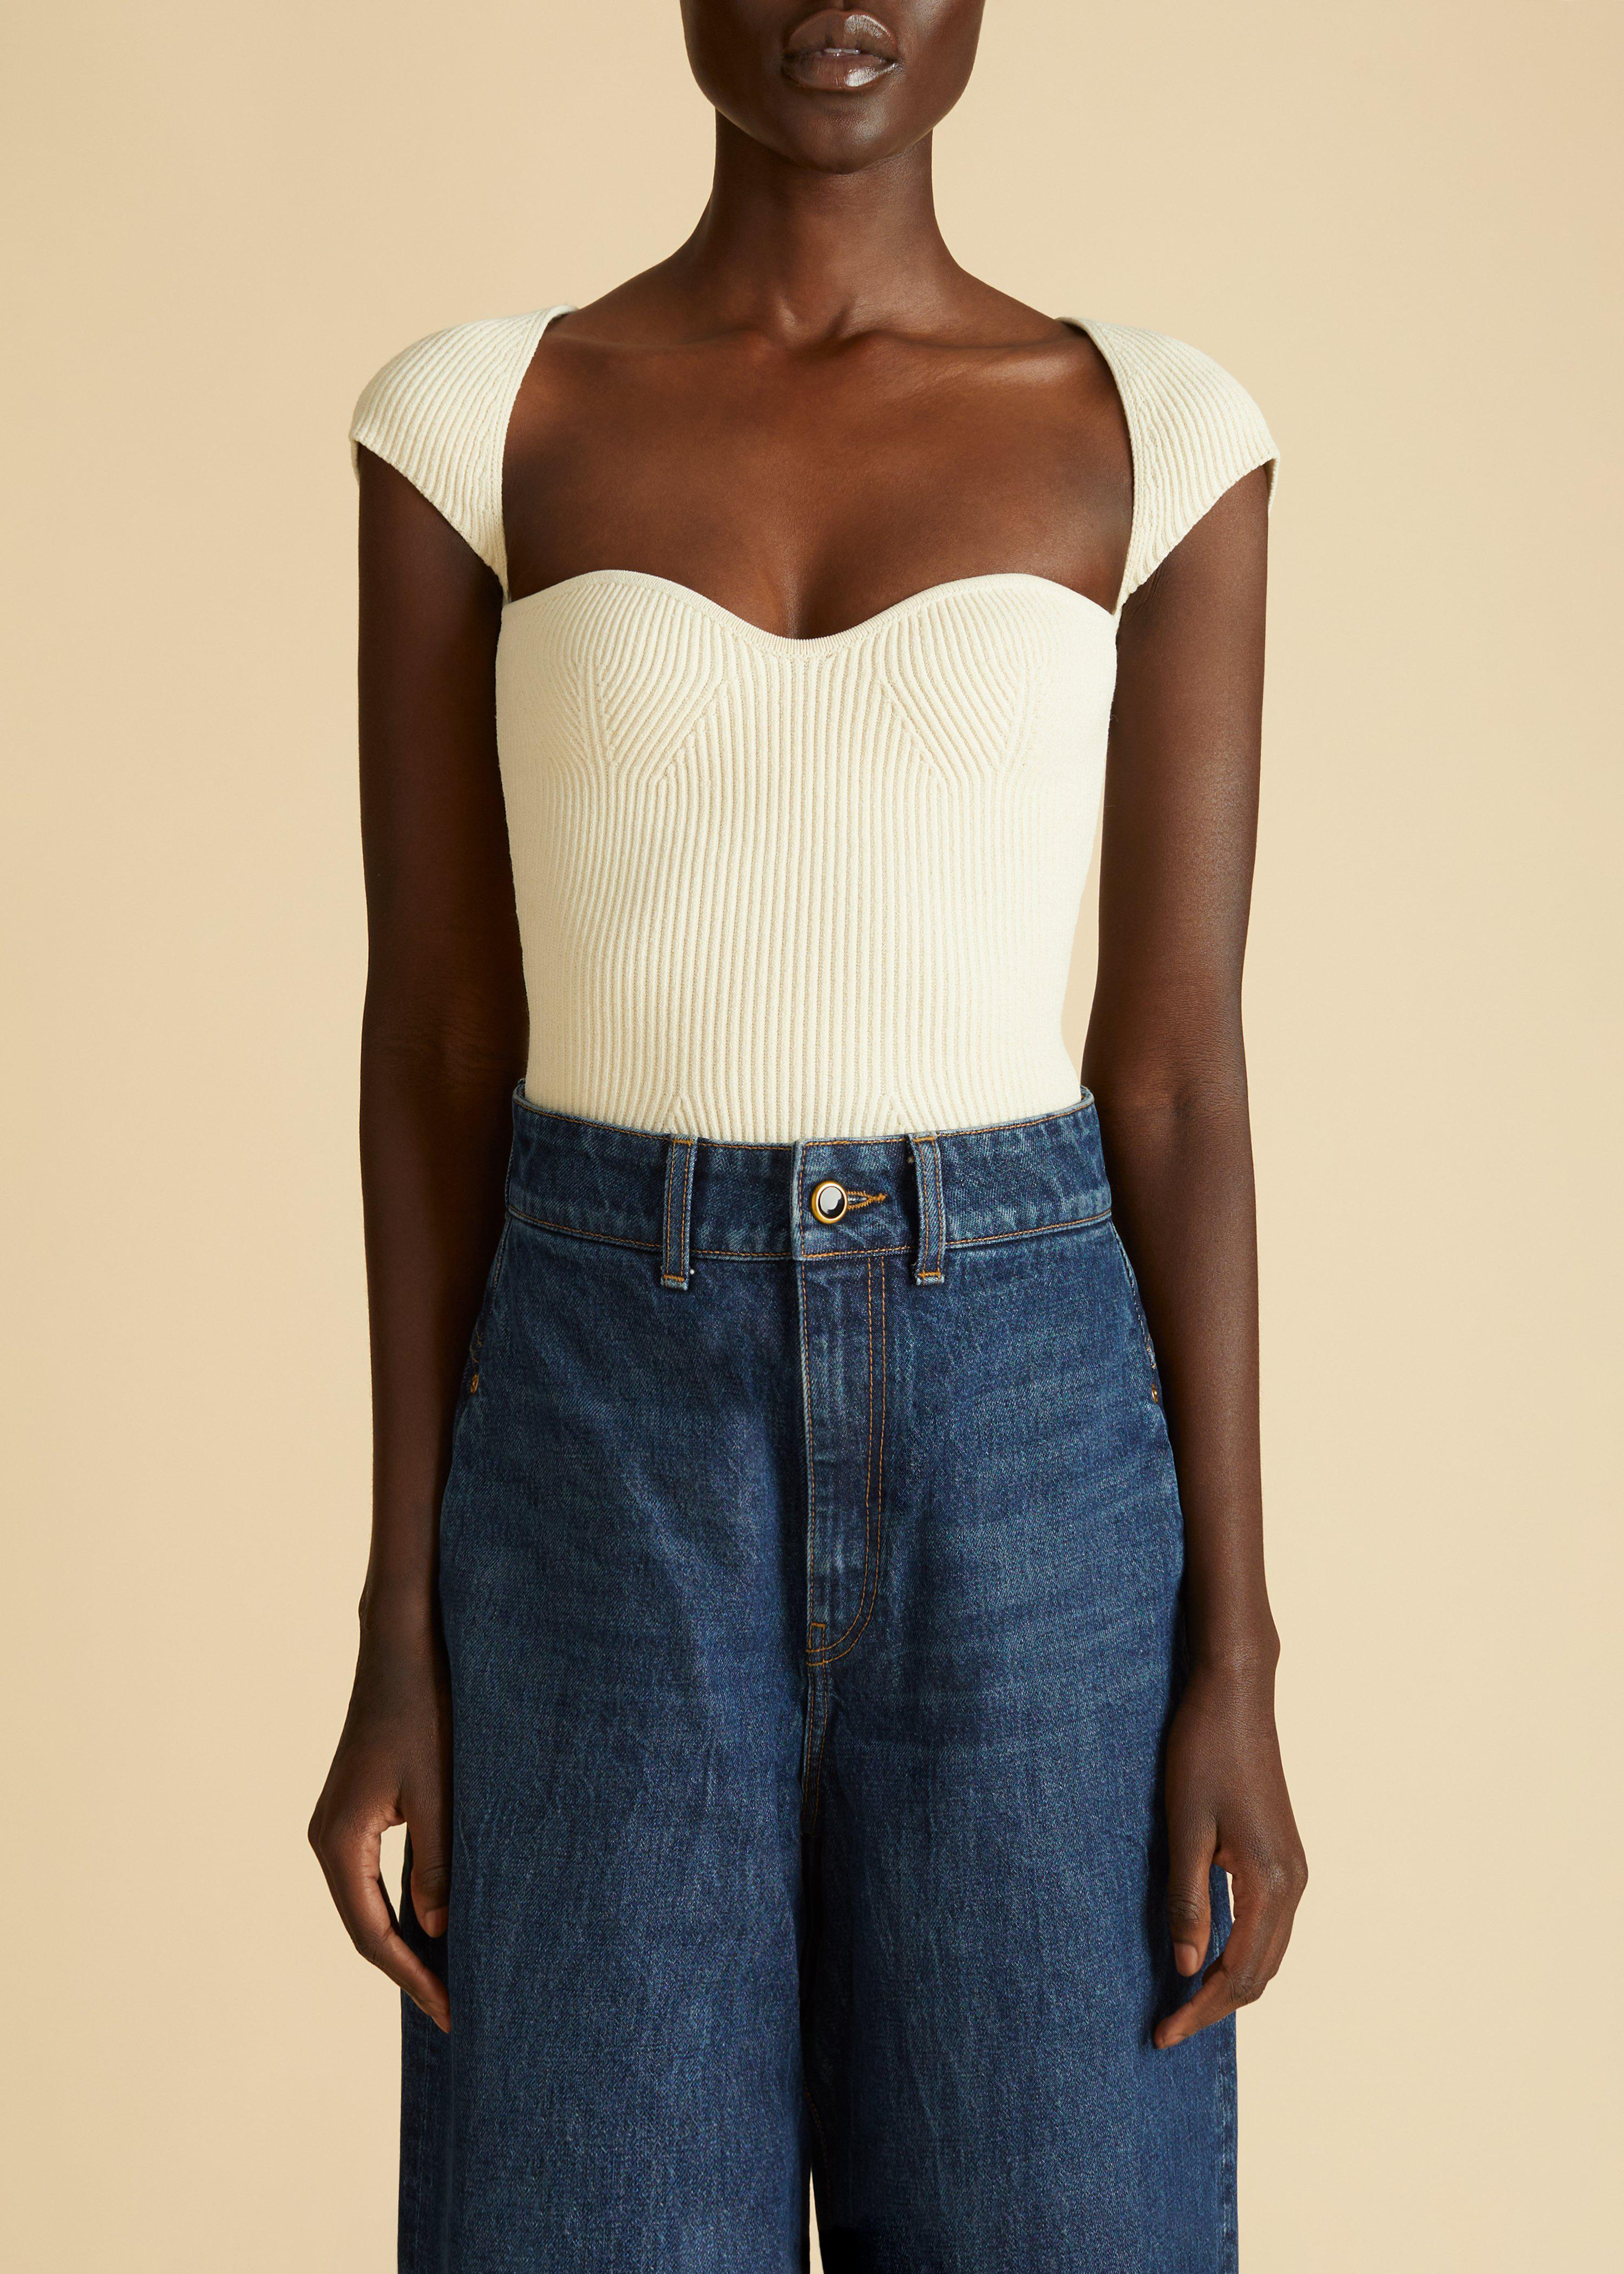 The Ista Top in Ivory